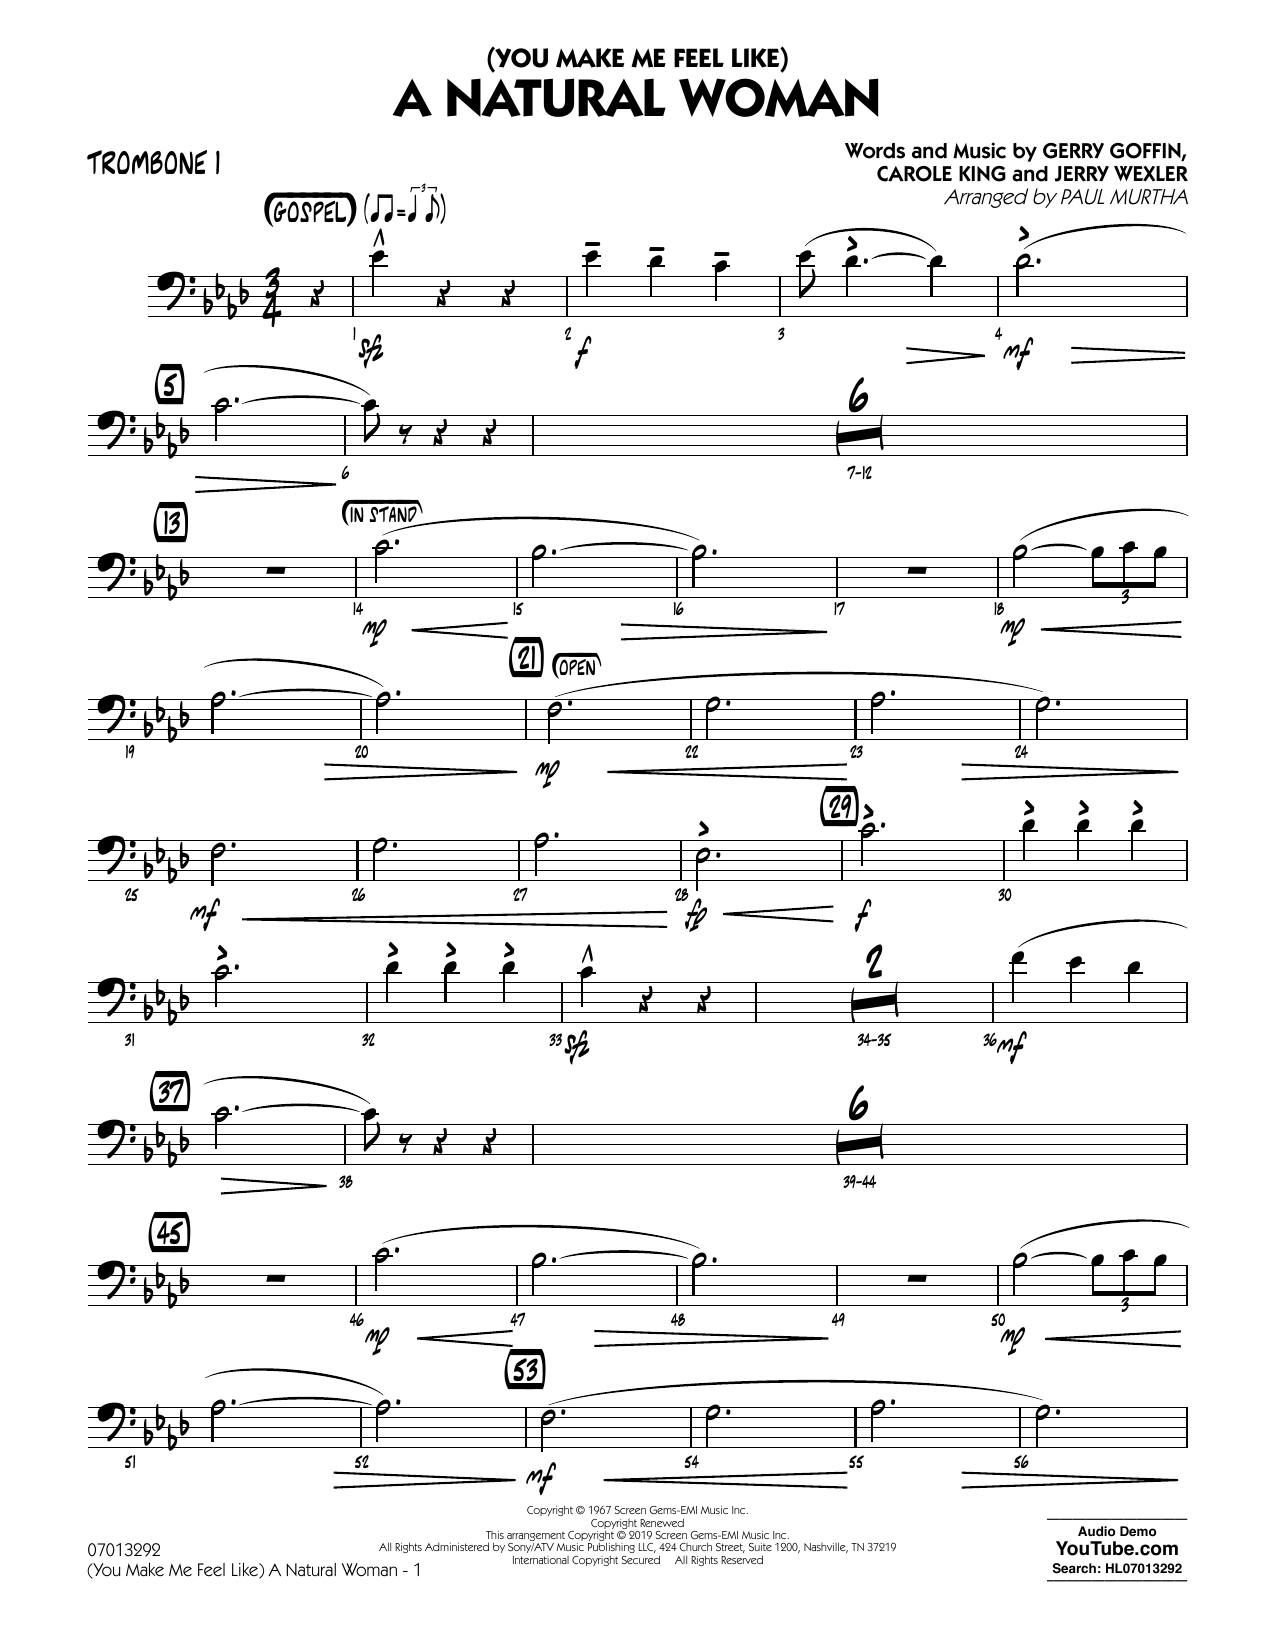 Aretha Franklin (You Make Me Feel Like) A Natural Woman (arr. Paul Murtha) - Trombone 1 sheet music notes and chords. Download Printable PDF.